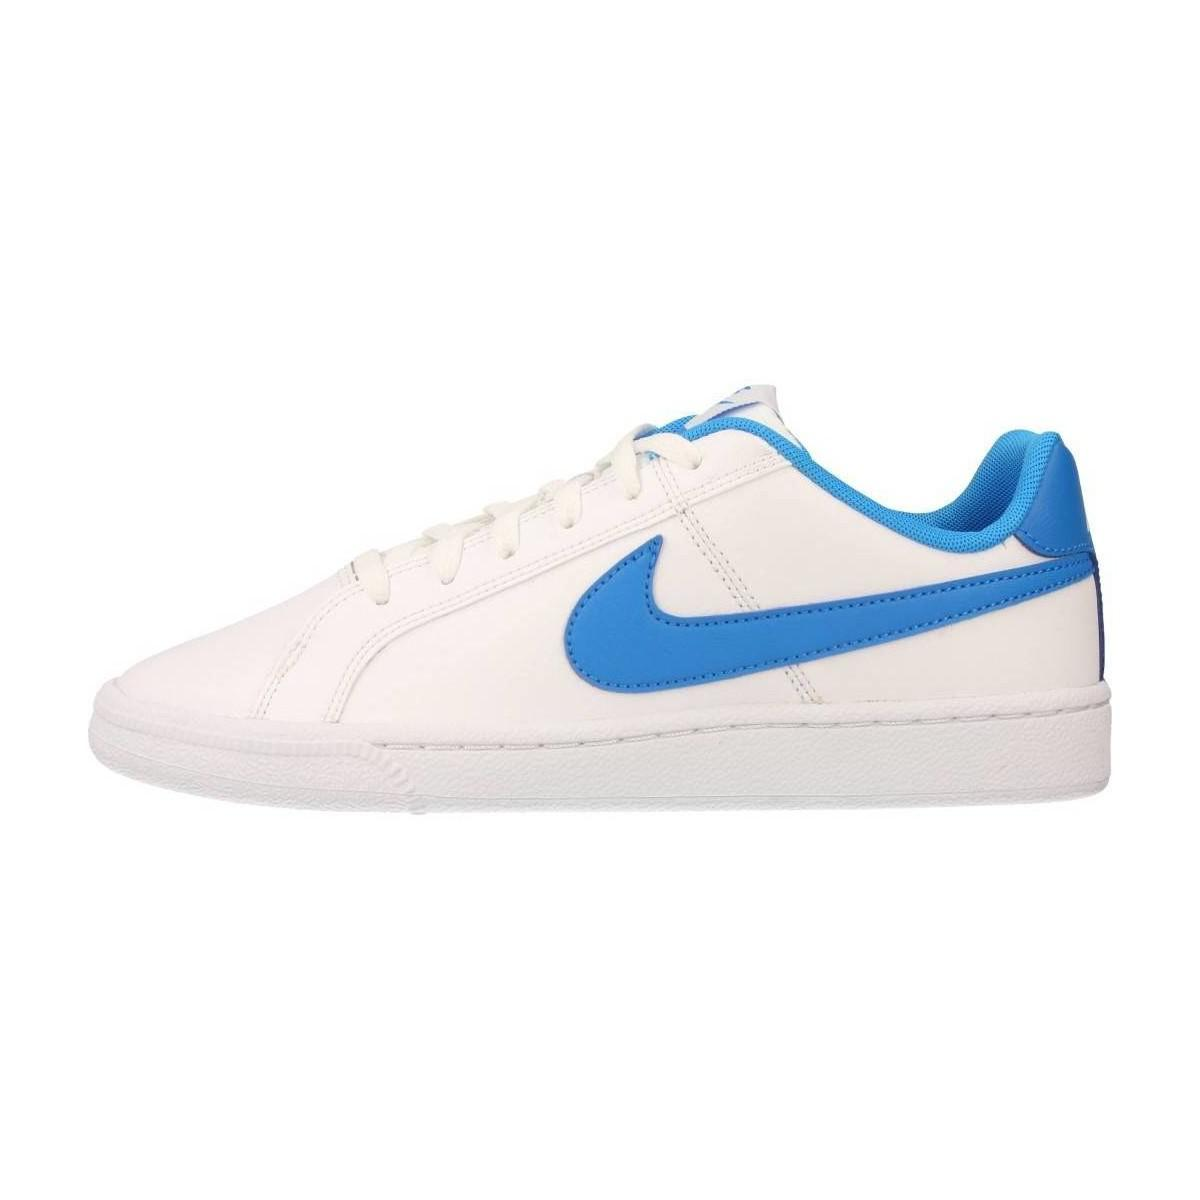 sports shoes 799c9 08674 Nike Court Royale Women s Shoes (trainers) In White in White - Lyst